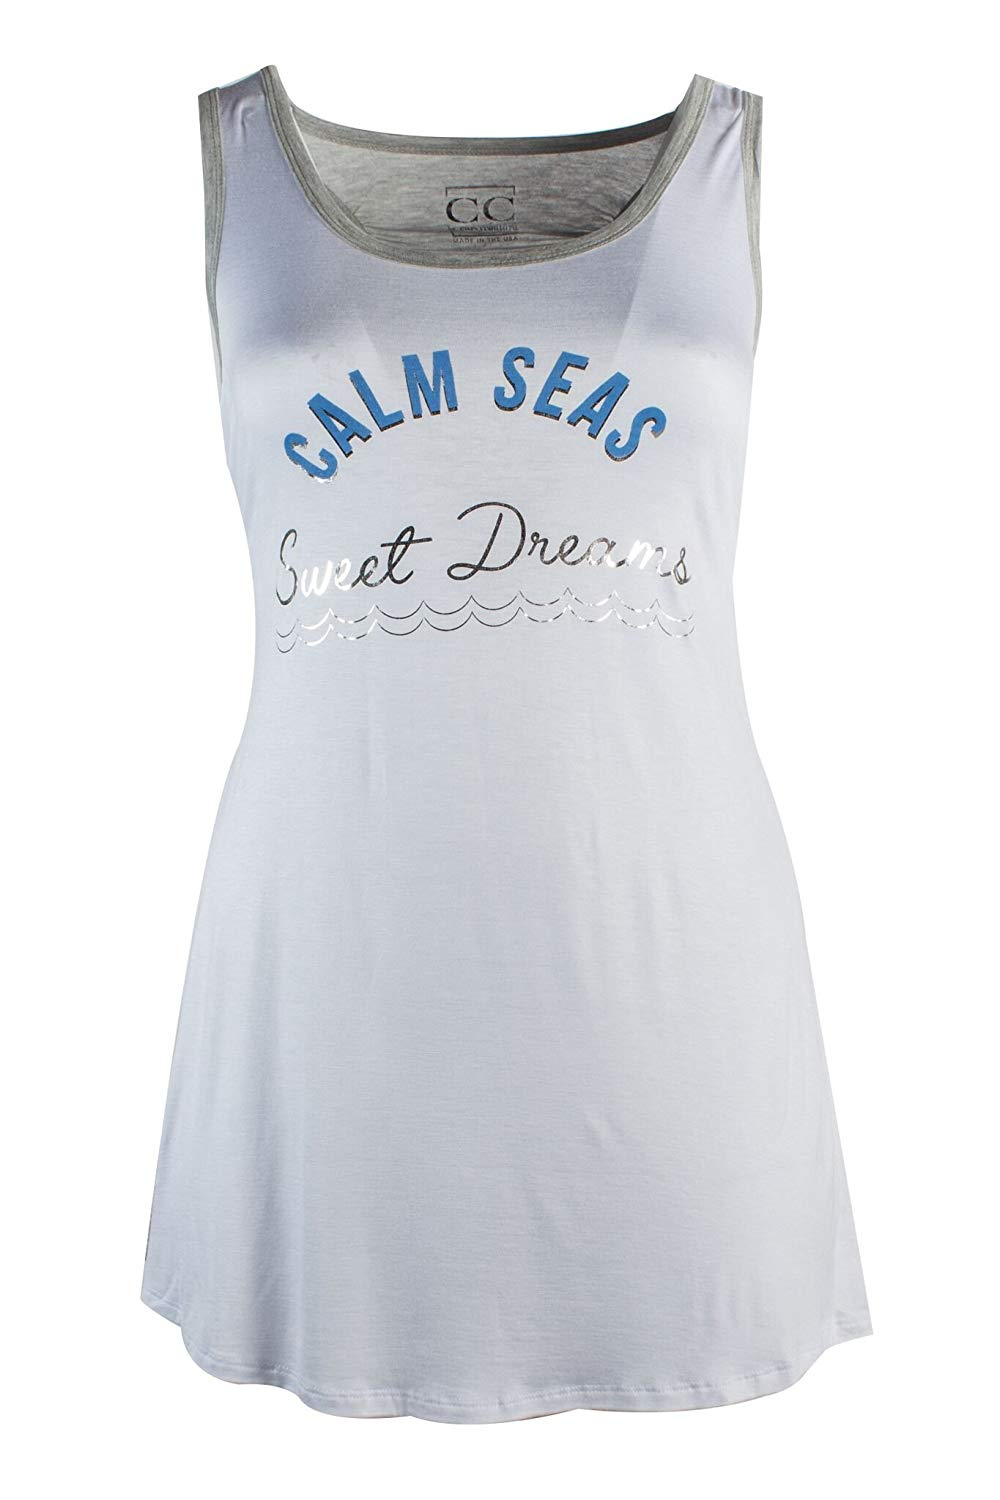 4a69a62f6644f Get Quotations · Curvy Couture Women's Plus Size Calm Sea Sleep Shirt